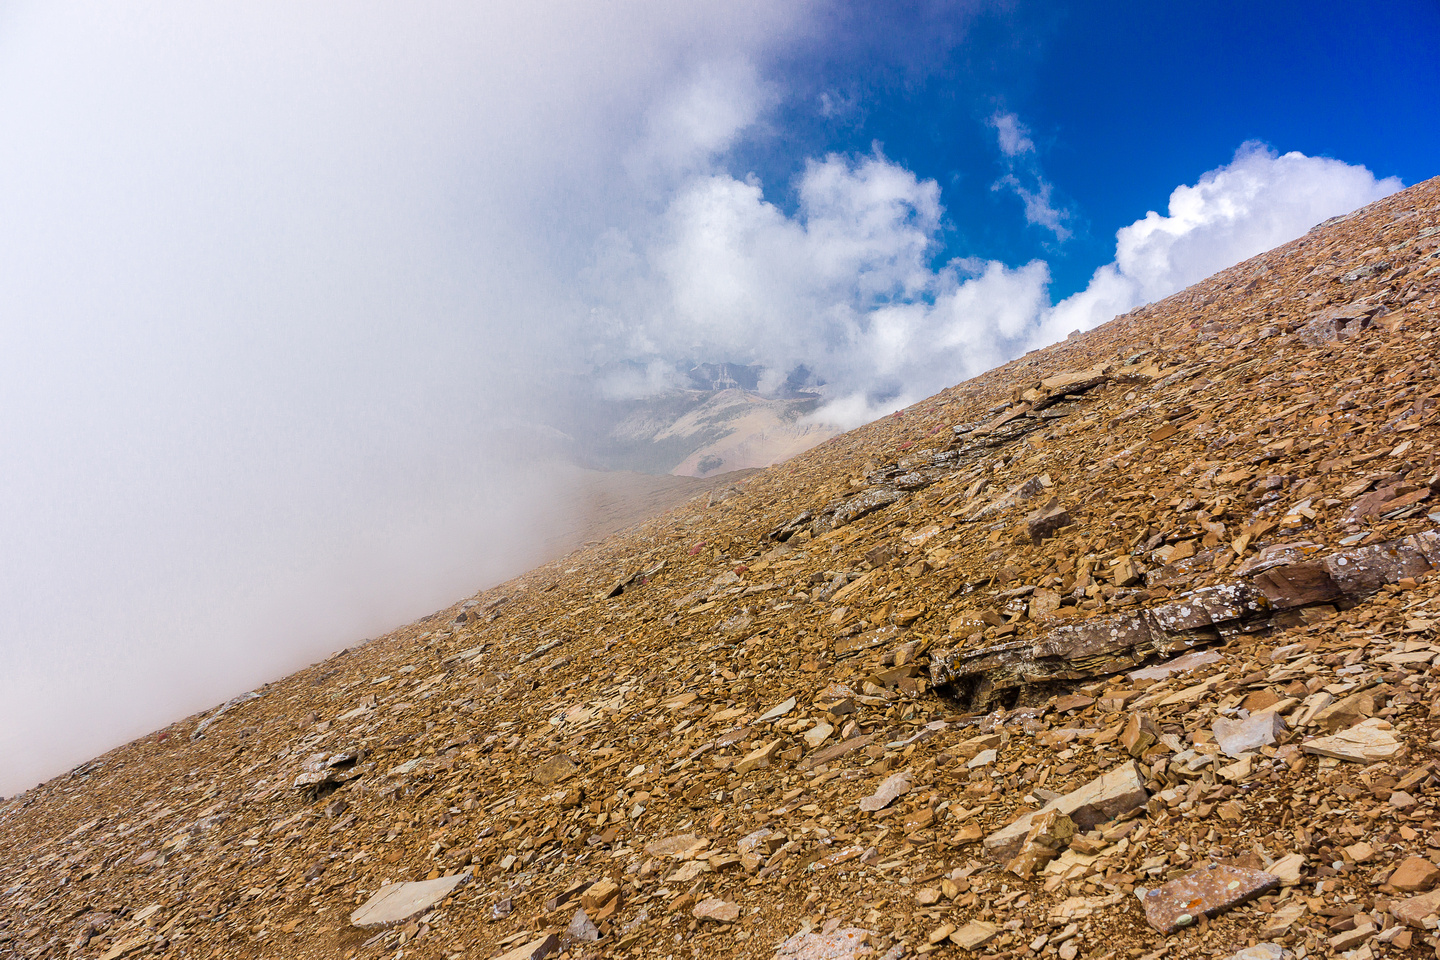 Finally I'm on the summit scree slopes - summit to the right here.